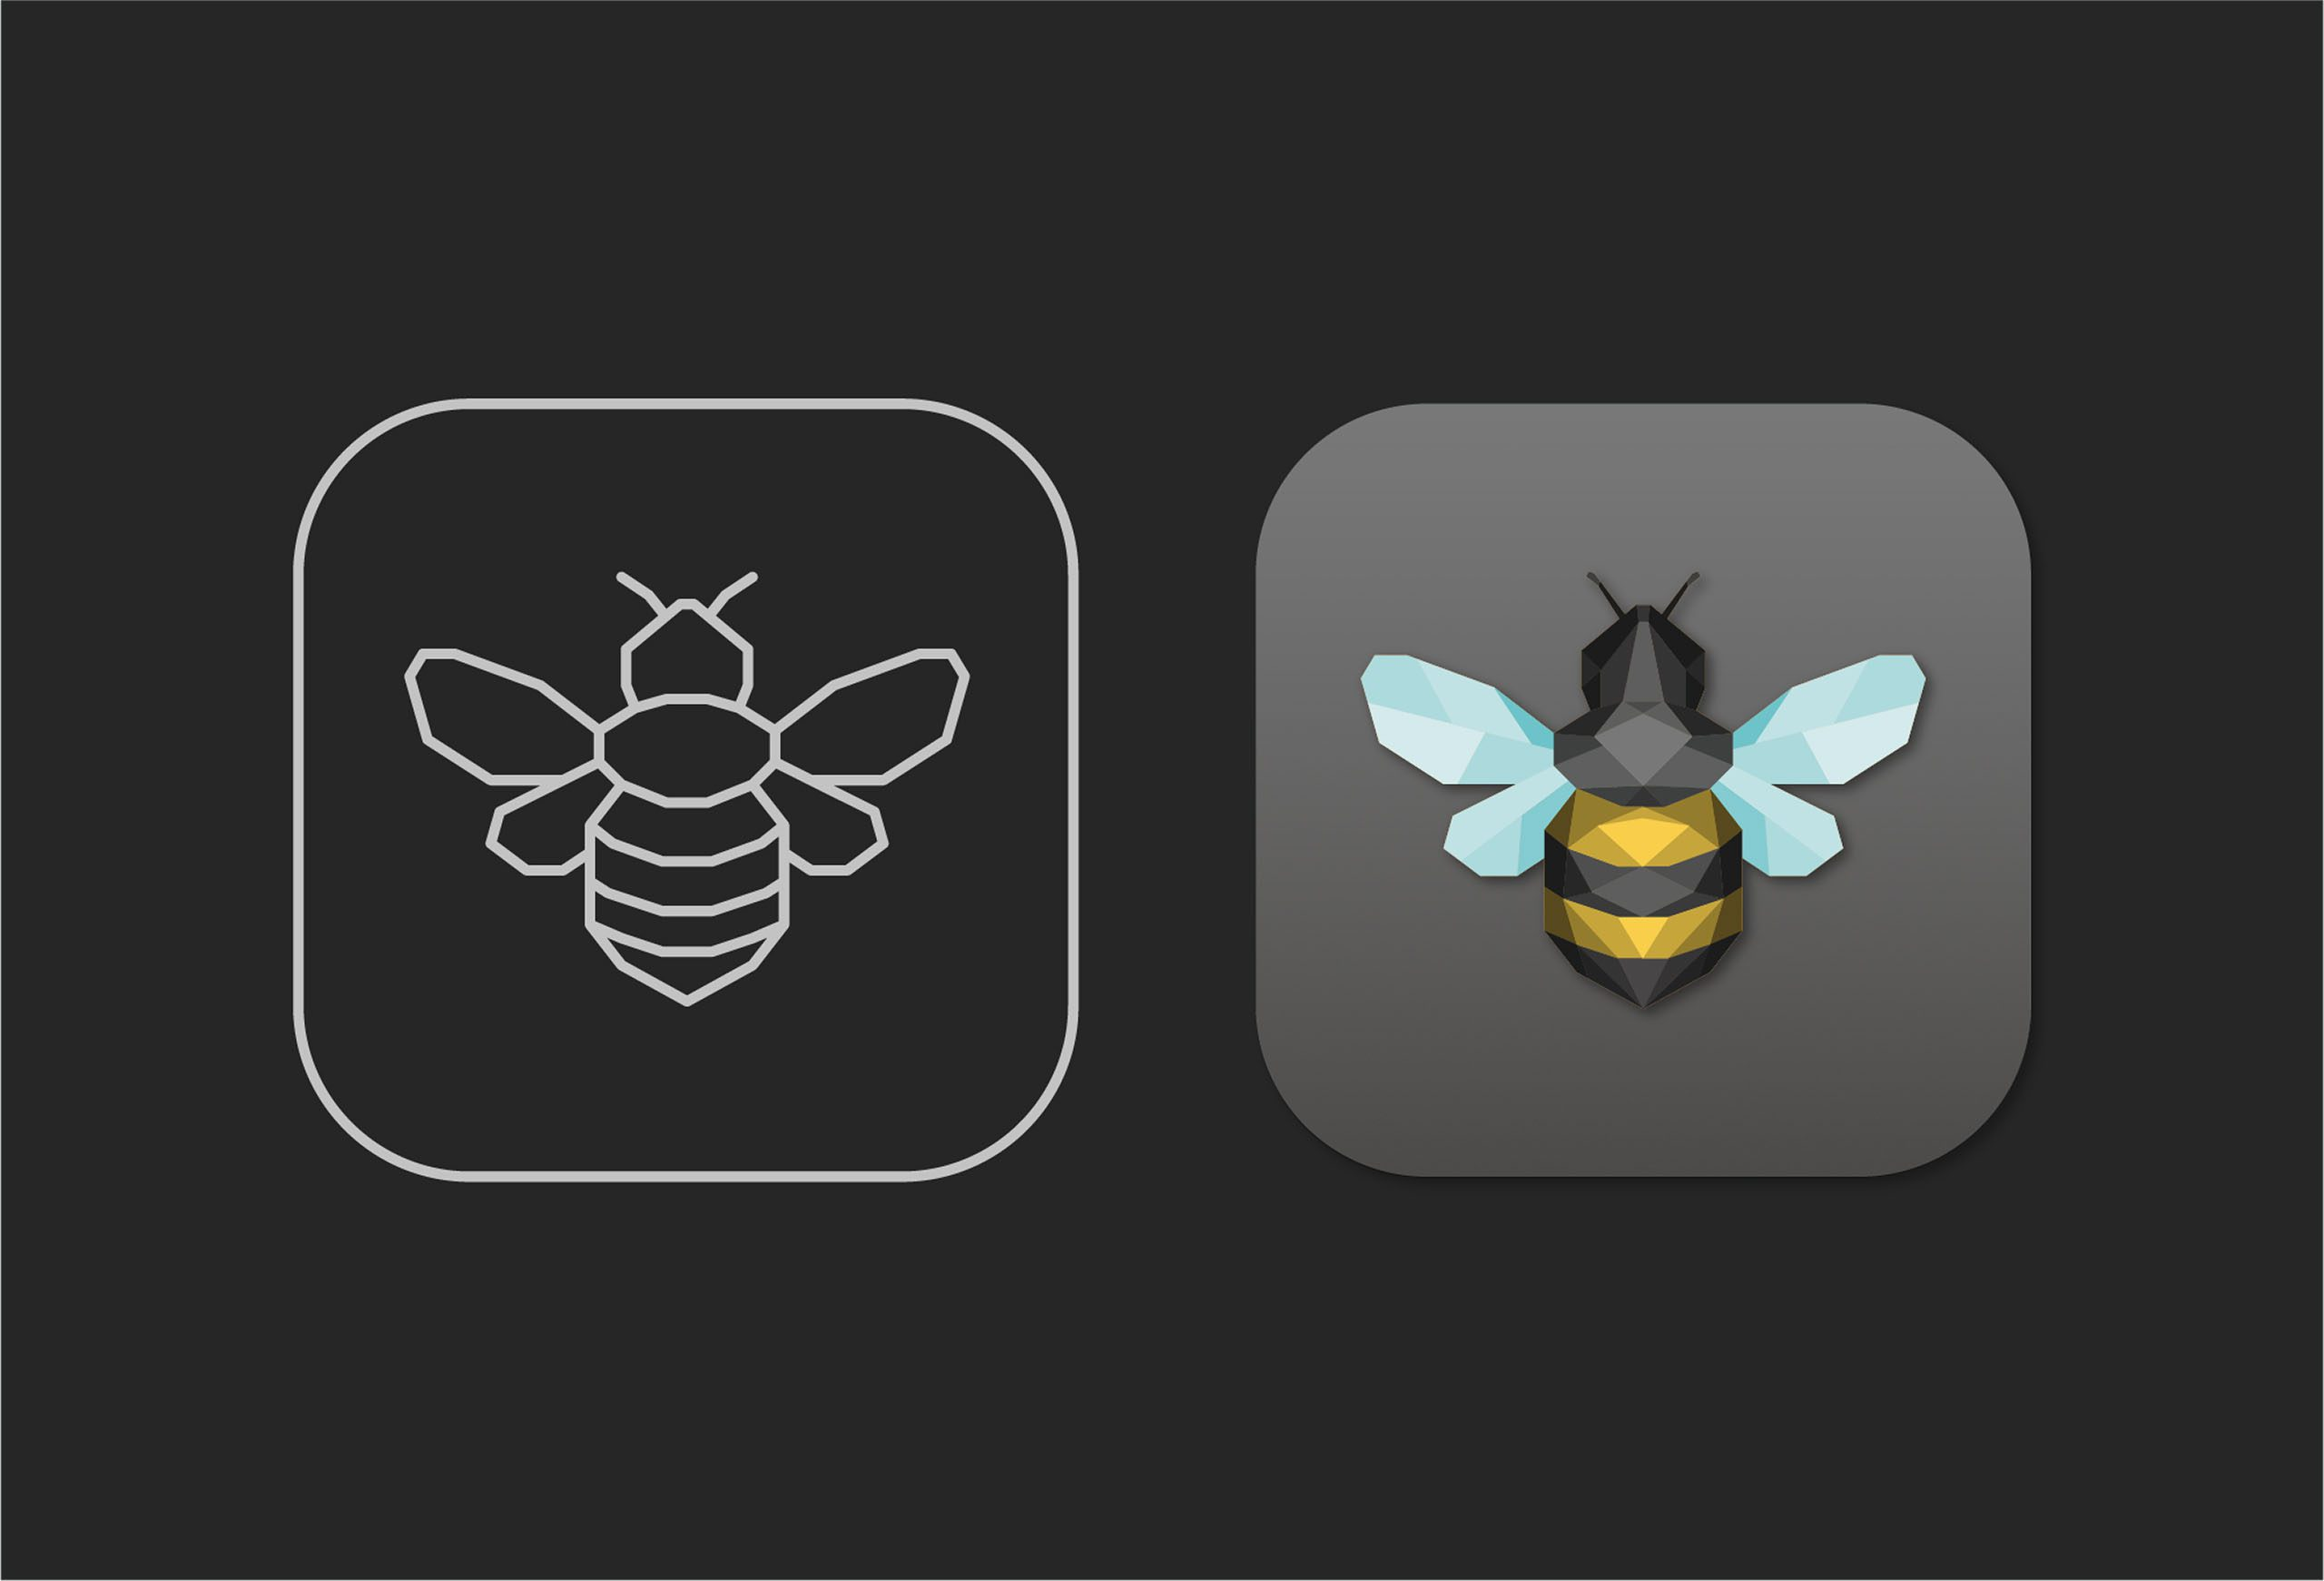 bee icon design